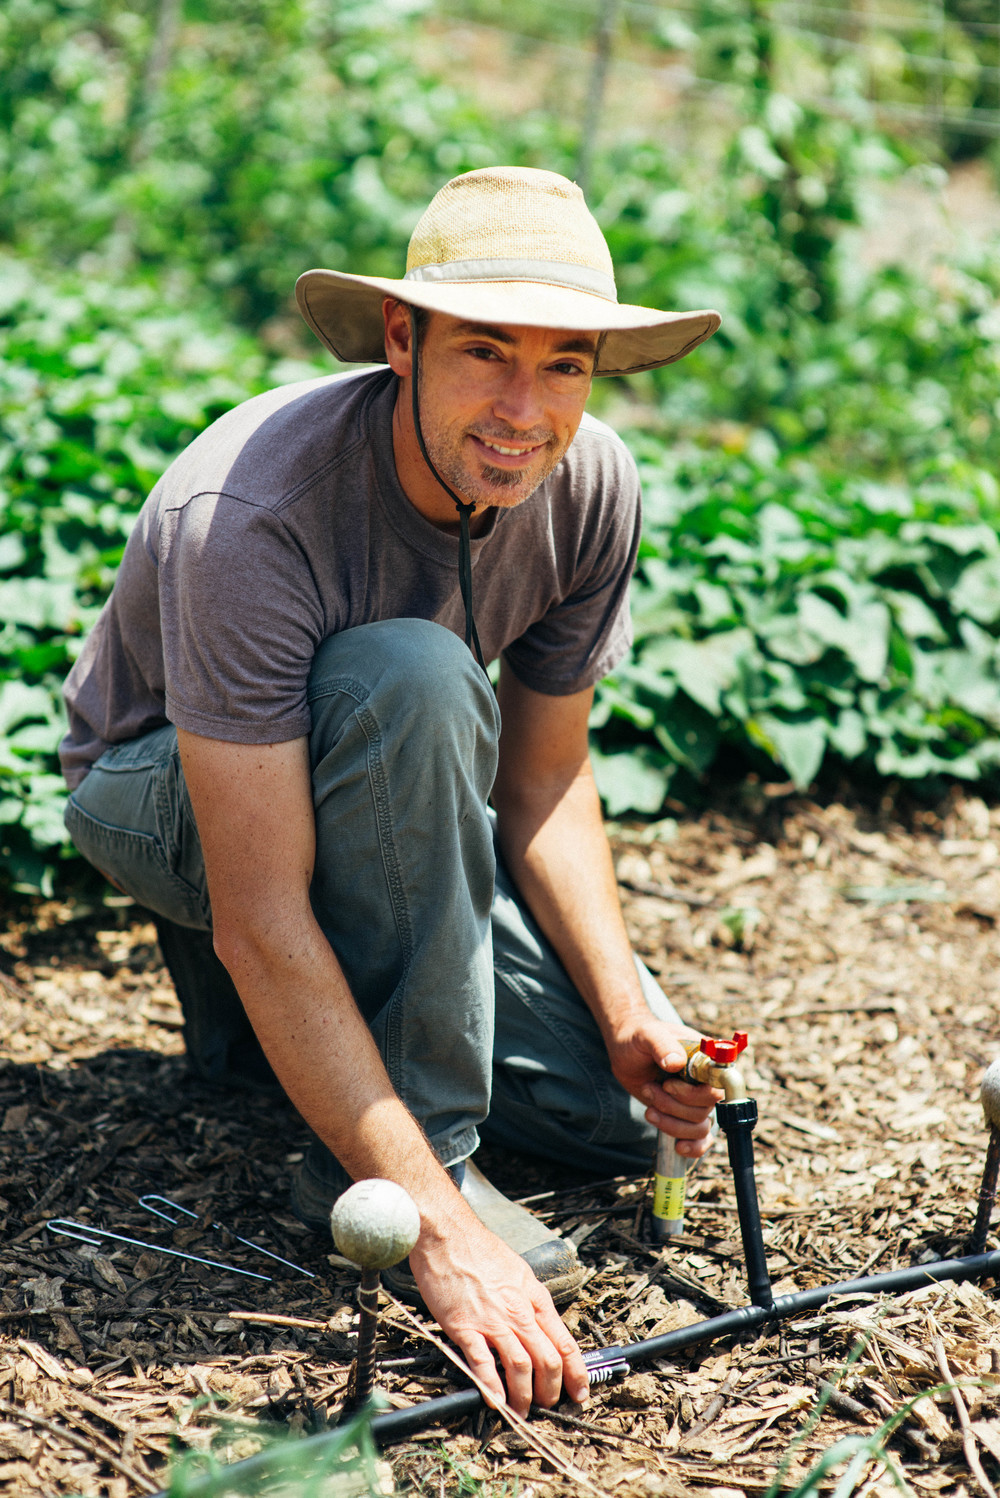 Seth Davis, Director of Hopewell Gardens, tests the newly installed irrigation system.   Lack of water conservation and storage in the developing world leaves farmers and their families susceptible to drought and famine during dry seasons. Simple, low-cost drip-irrigation systems like this one are believed to be a necessary innovation.